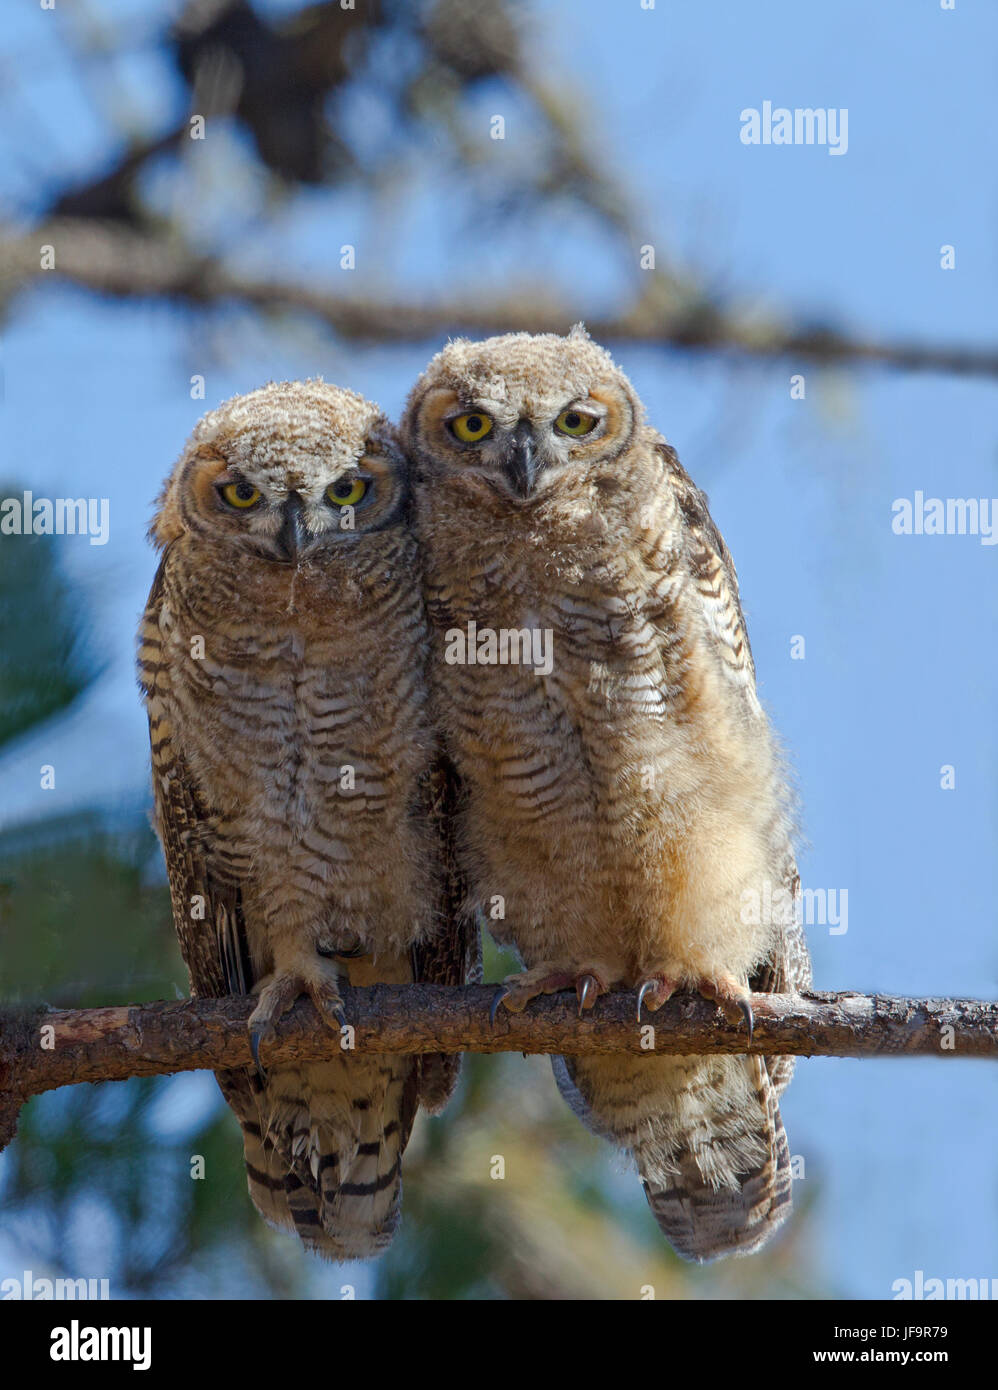 Two Great horned Owl Fledglings - Stock Image